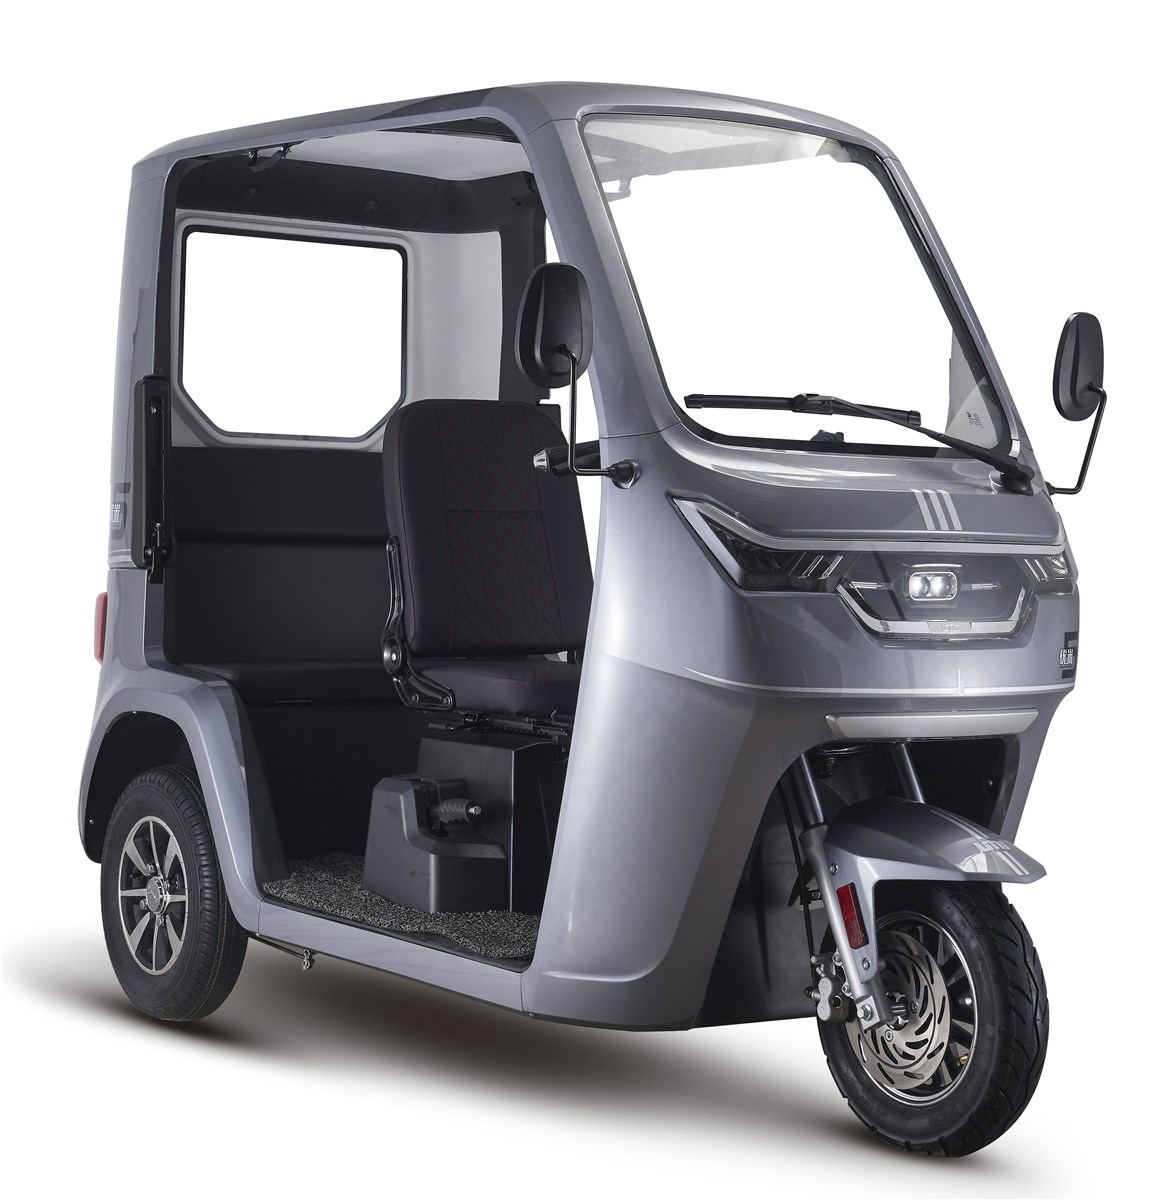 2021 EEC Approval Tuk Tuk New Half Open Electric Tricycle For Passenger